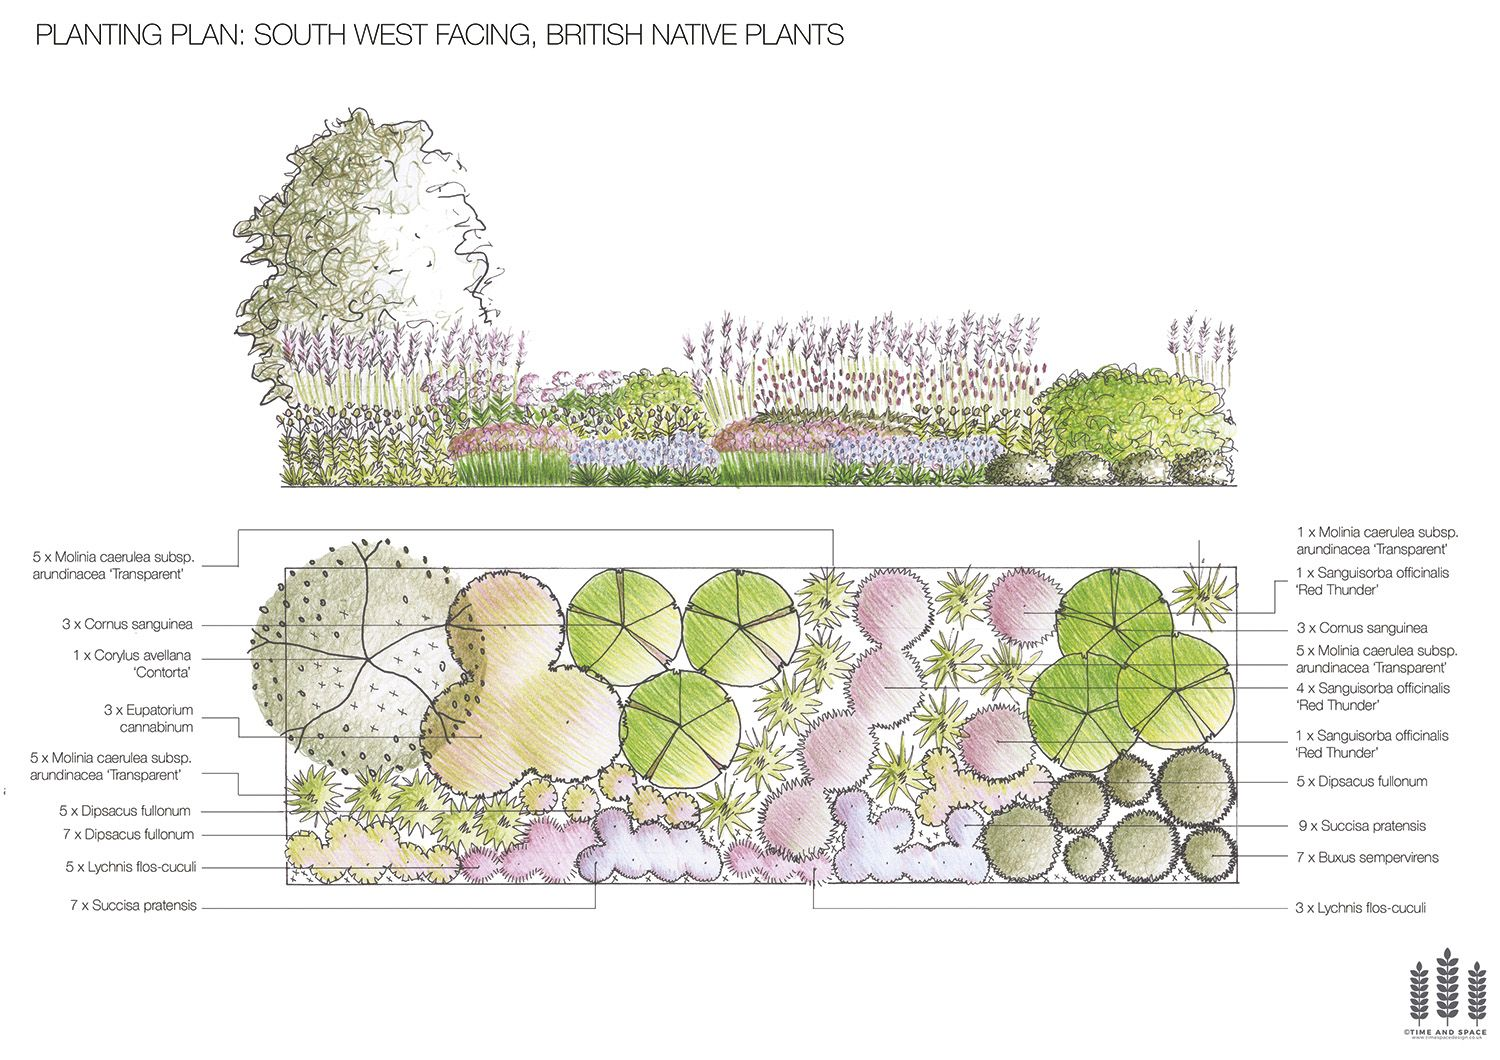 South West Facing British Native Plants FREE Planting Plan Bespoke Planting  Plans For UK Customers Reduced Until July 2016